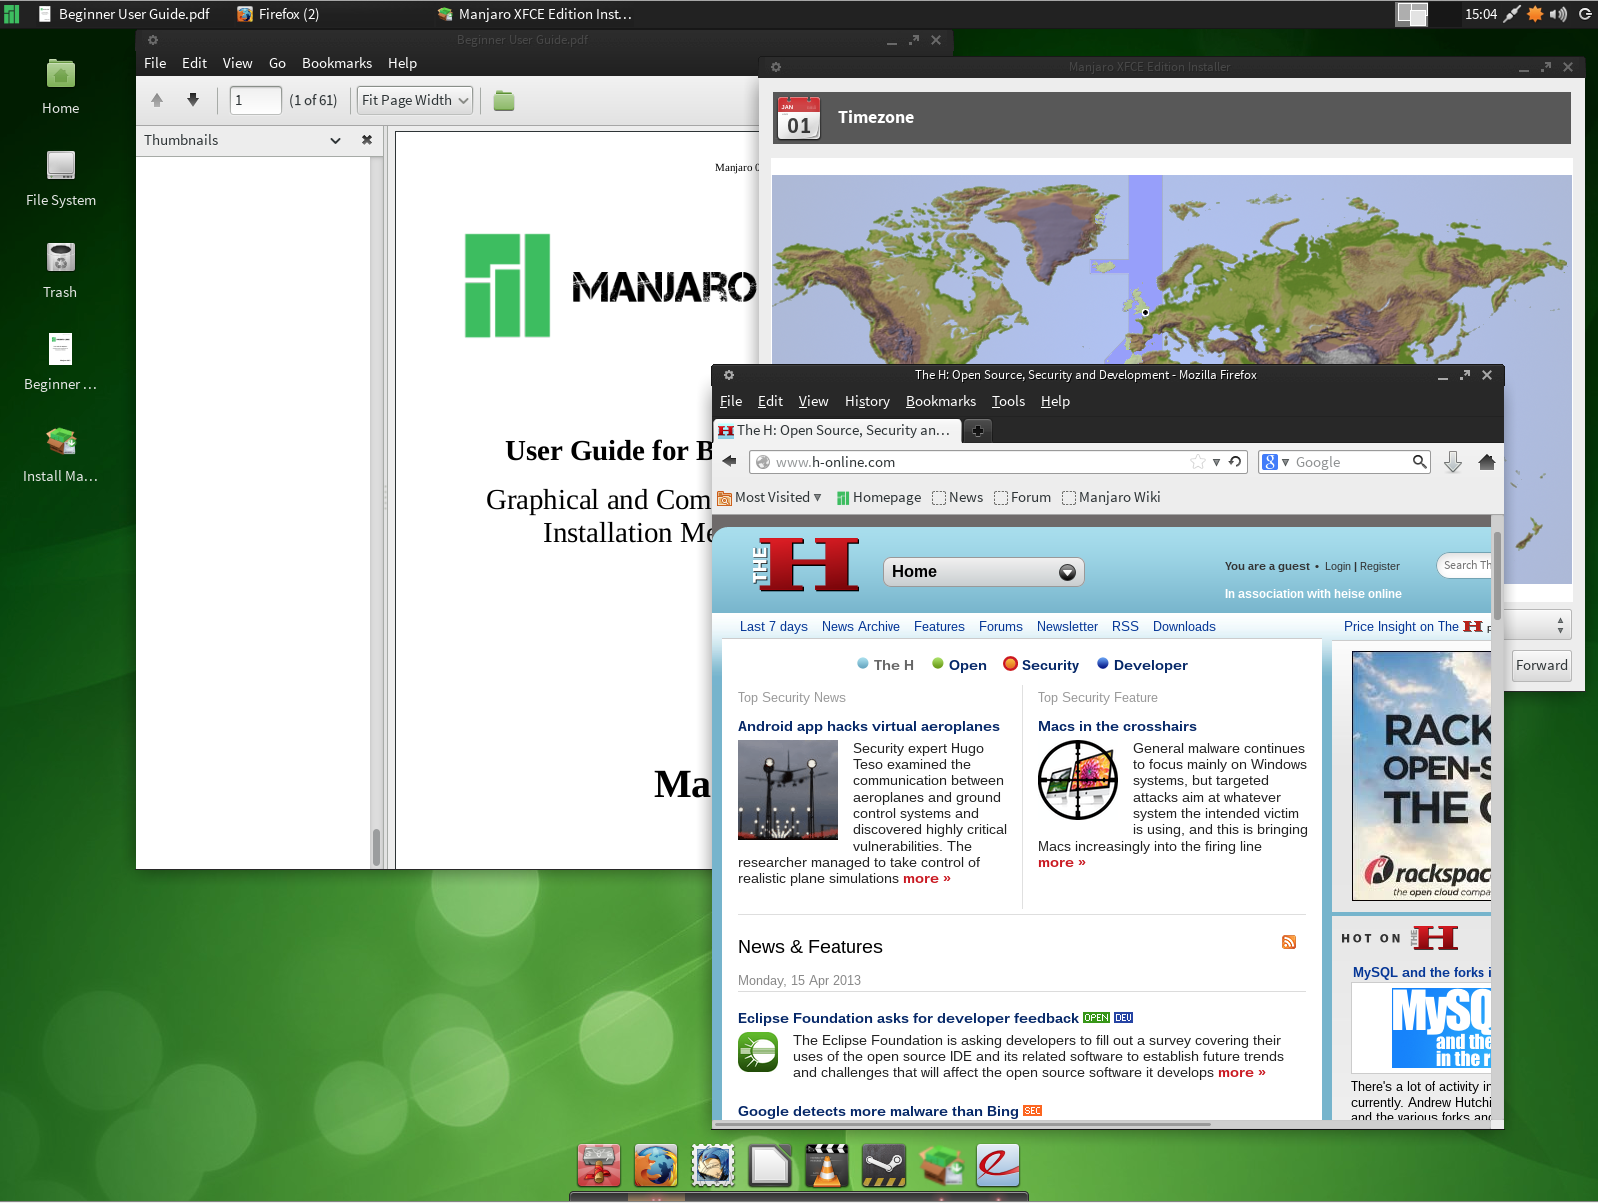 Manjaro screenshot